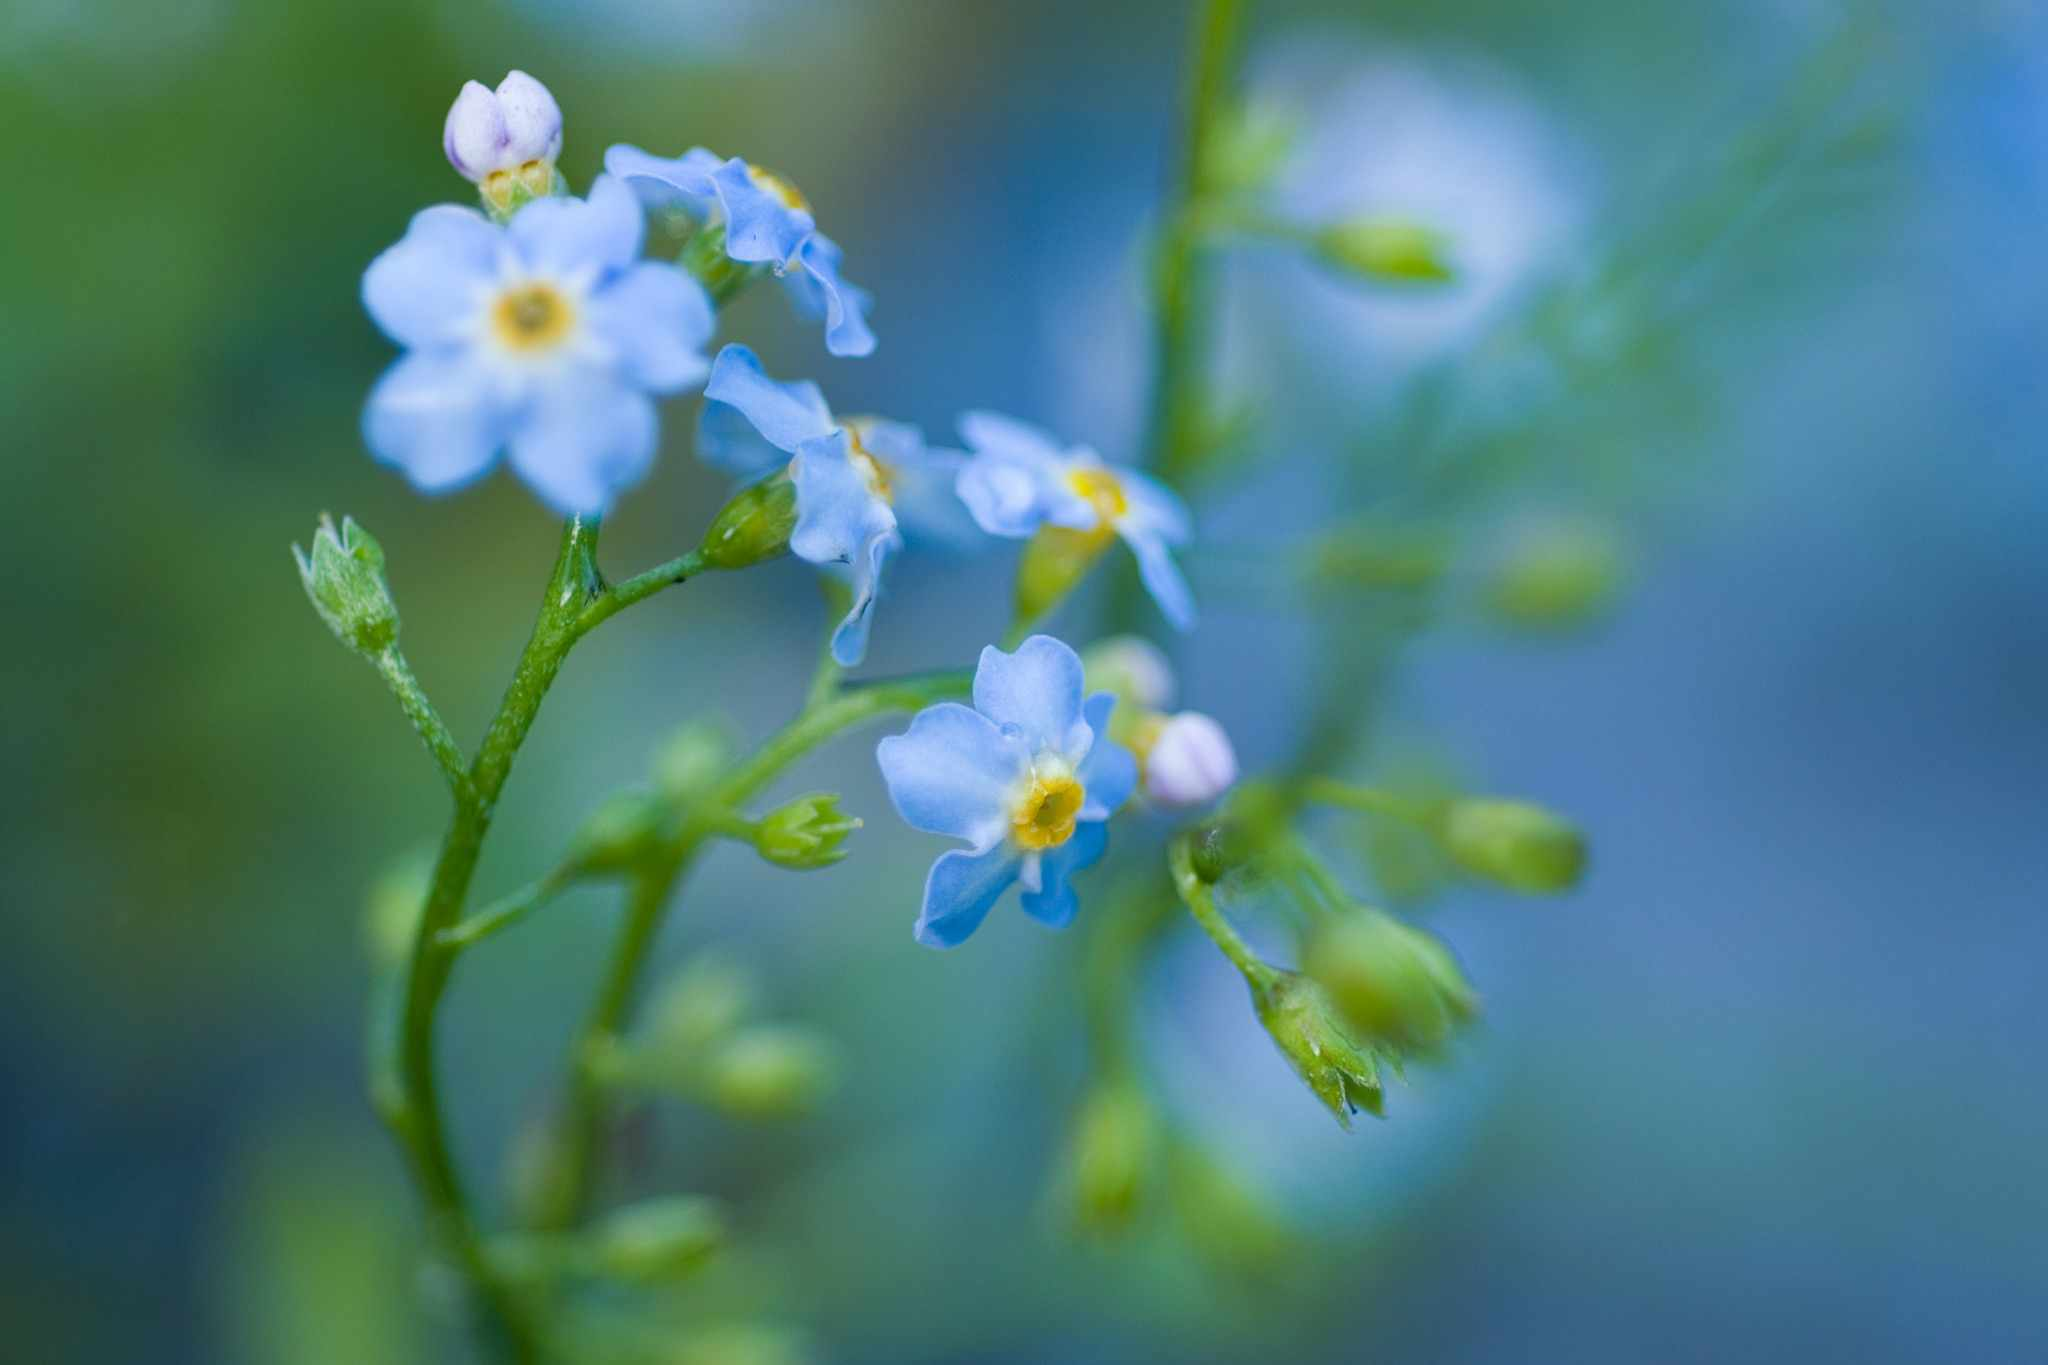 Tiny blue flowers of water forget-me-not